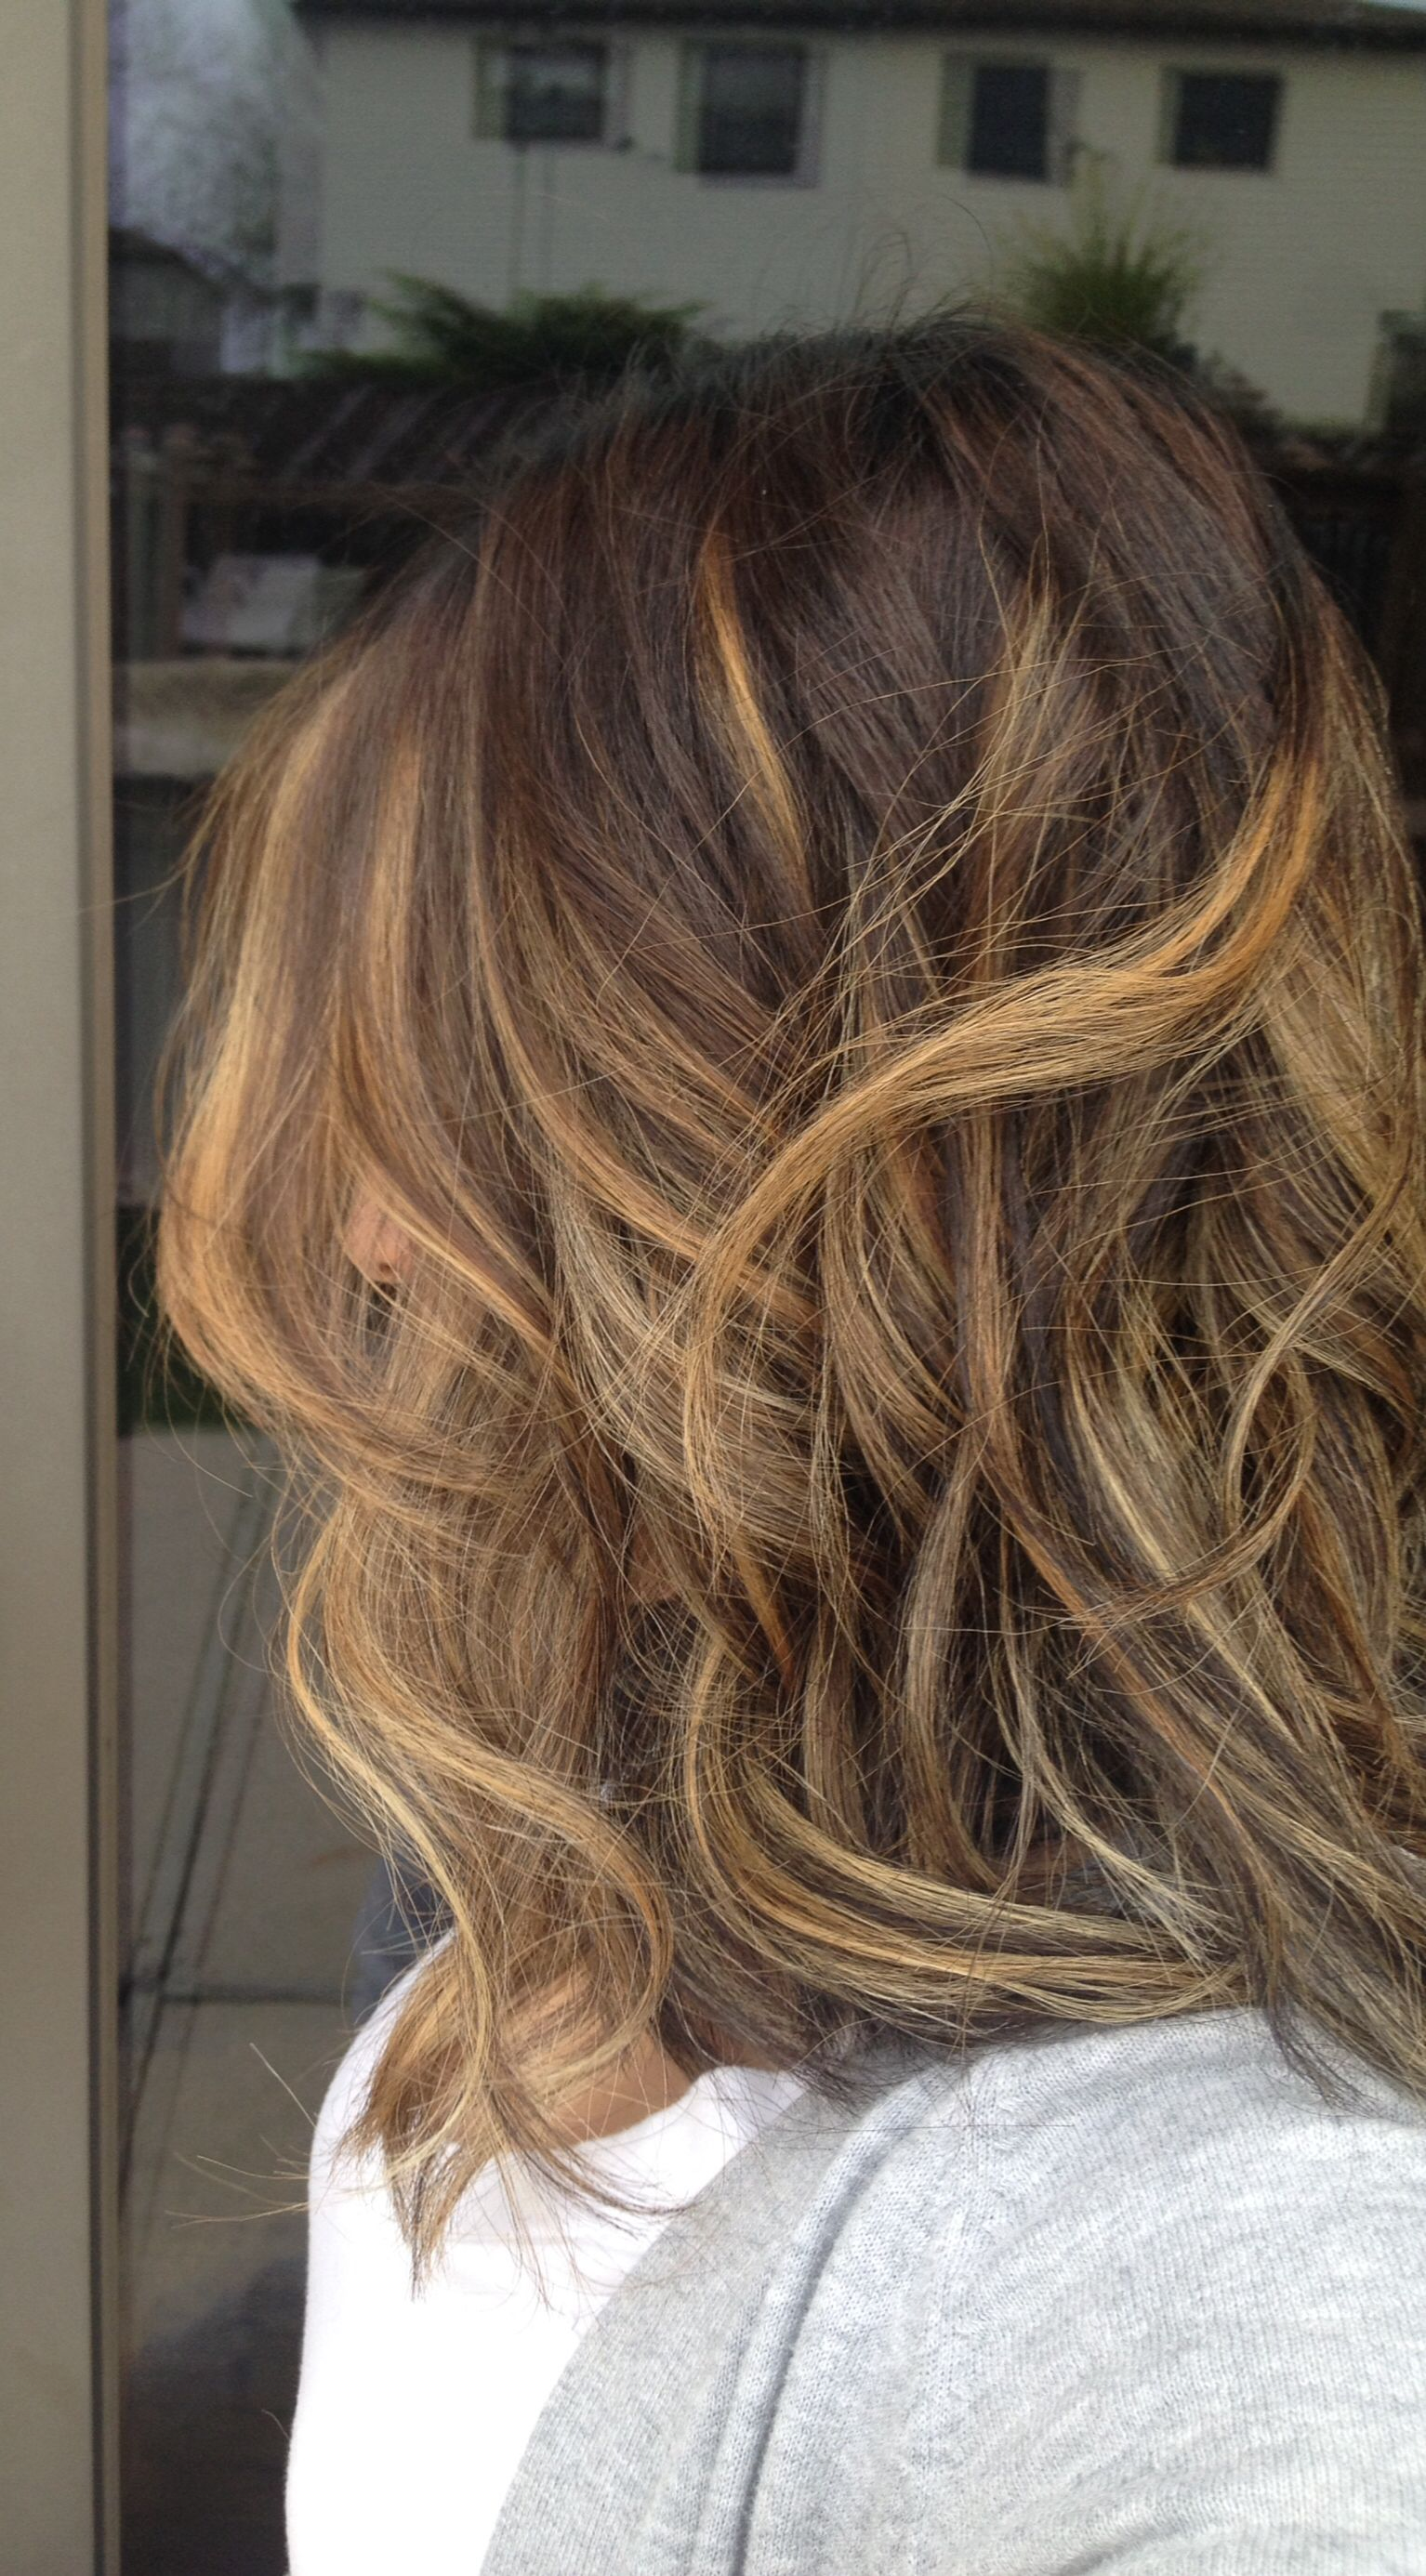 Ombr Sombre Highlights Hair Waves Instagram Plumhair Yumm